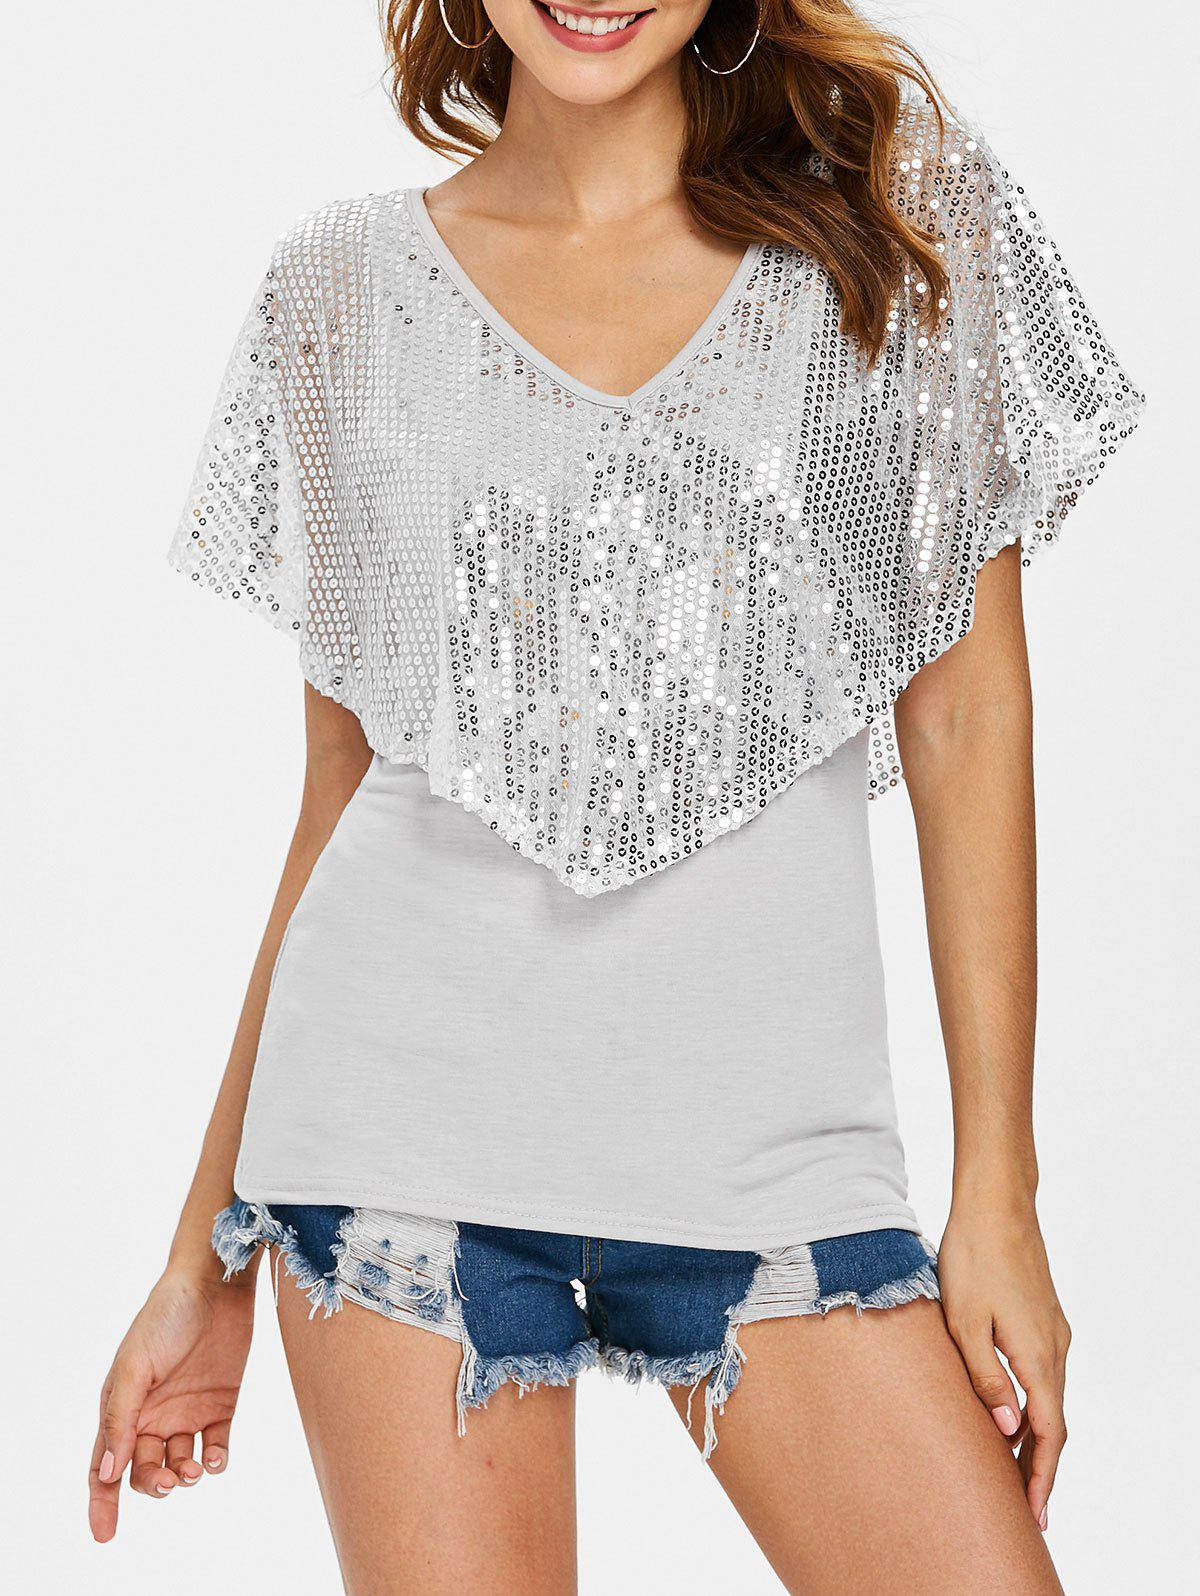 Sequin Plunging Neck Overlay T-shirt sequin mesh overlay front fitted